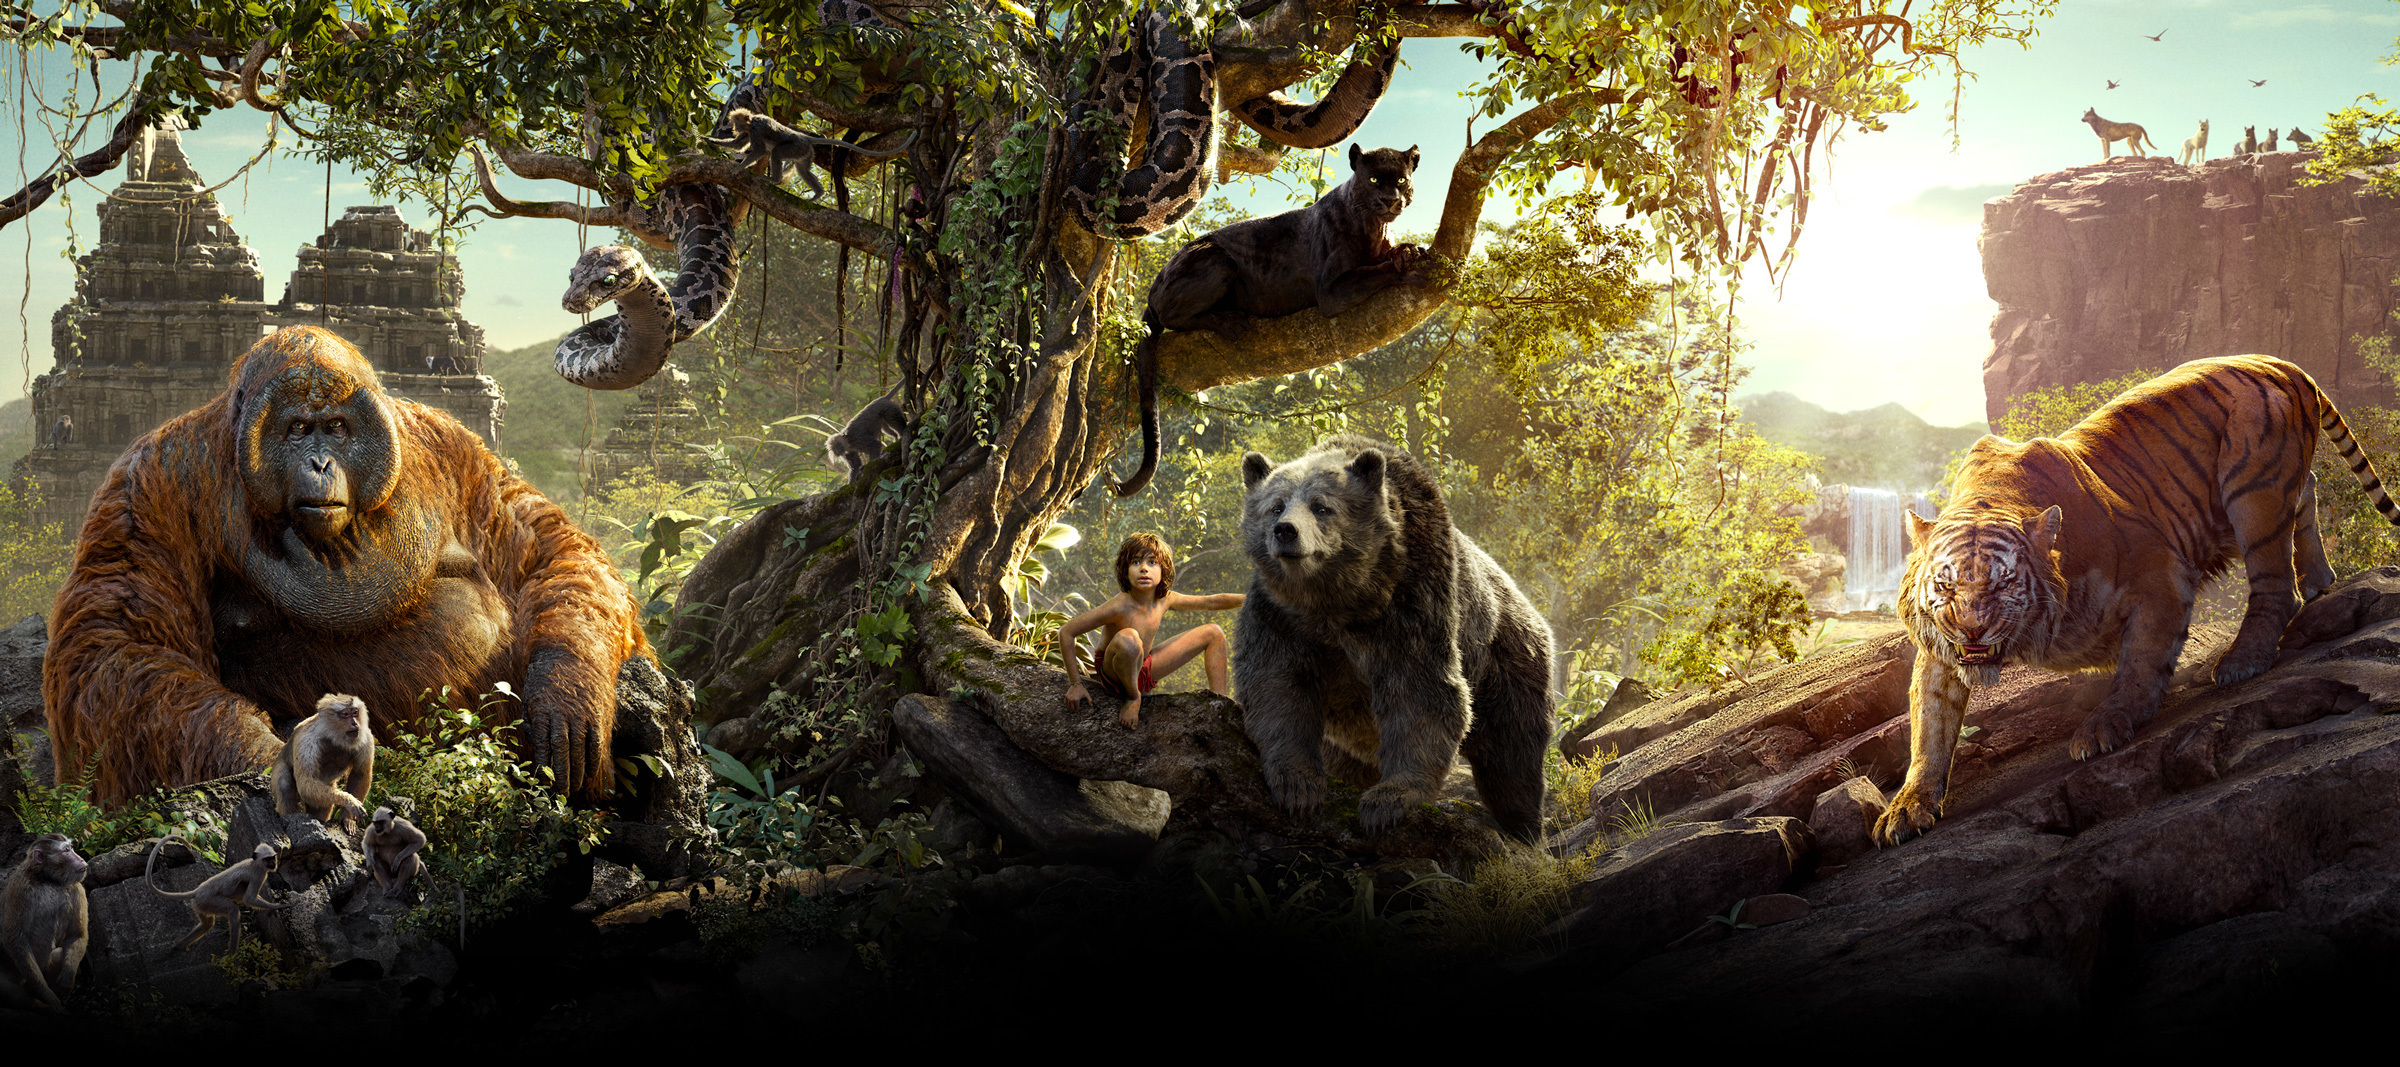 The Jungle Book 2016 - AU Flex Hero